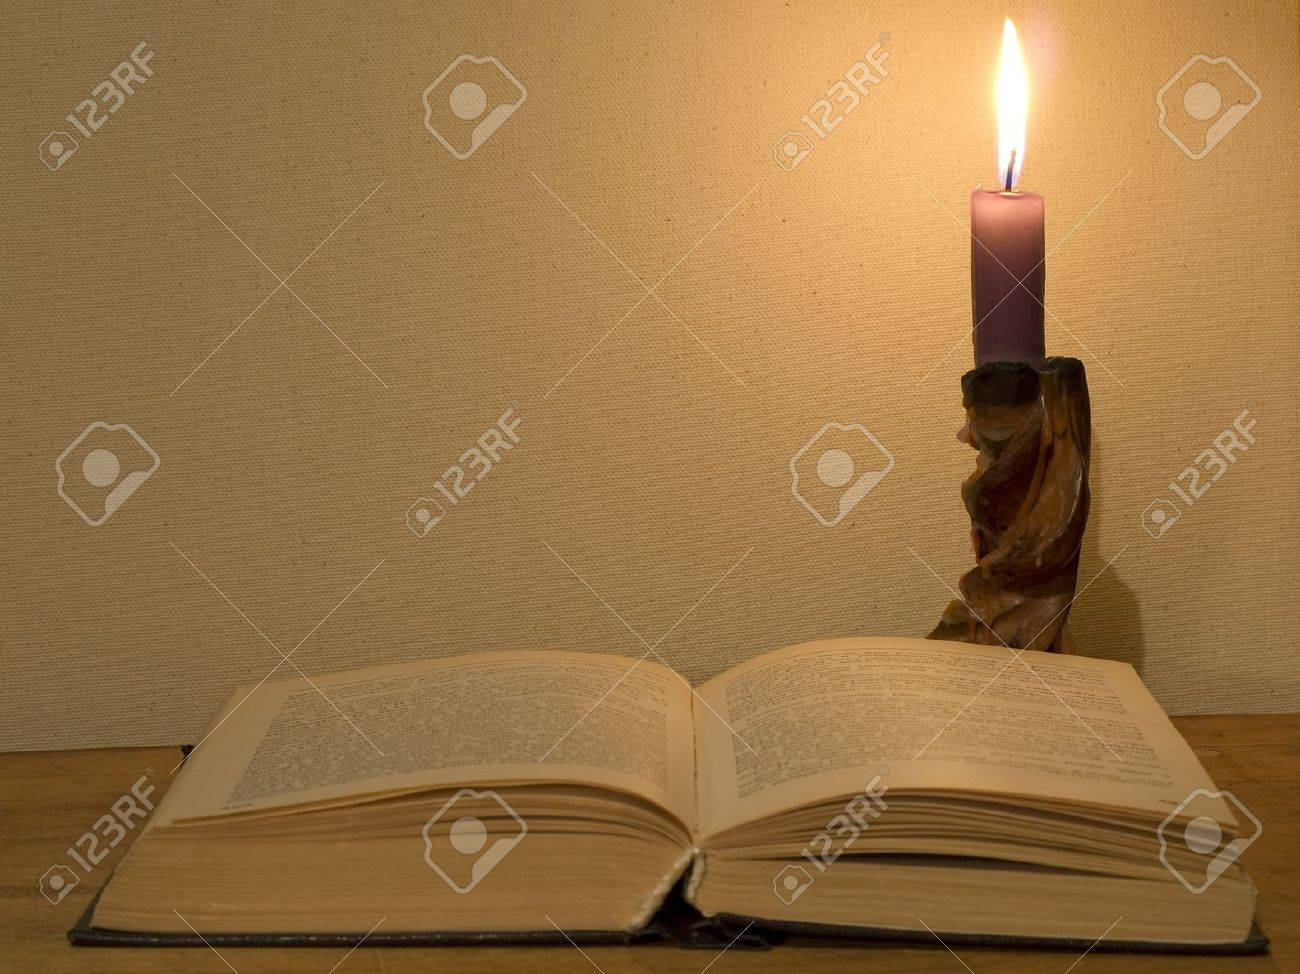 Old open book and  glowing candle on a wooden table. Stock Photo - 11511172